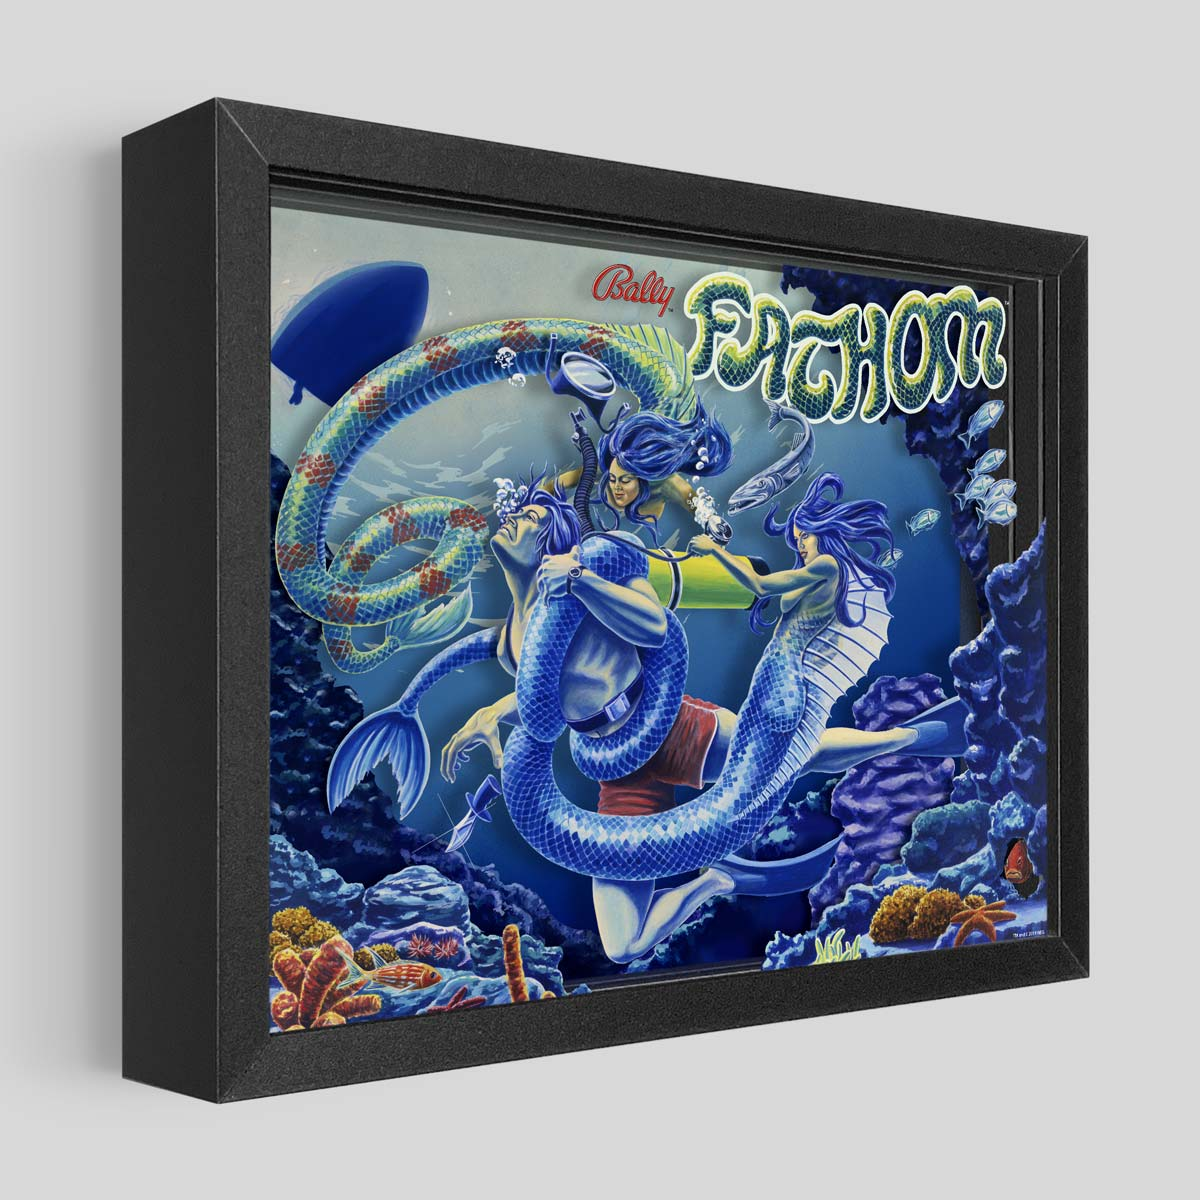 Fathom Shadowbox Art